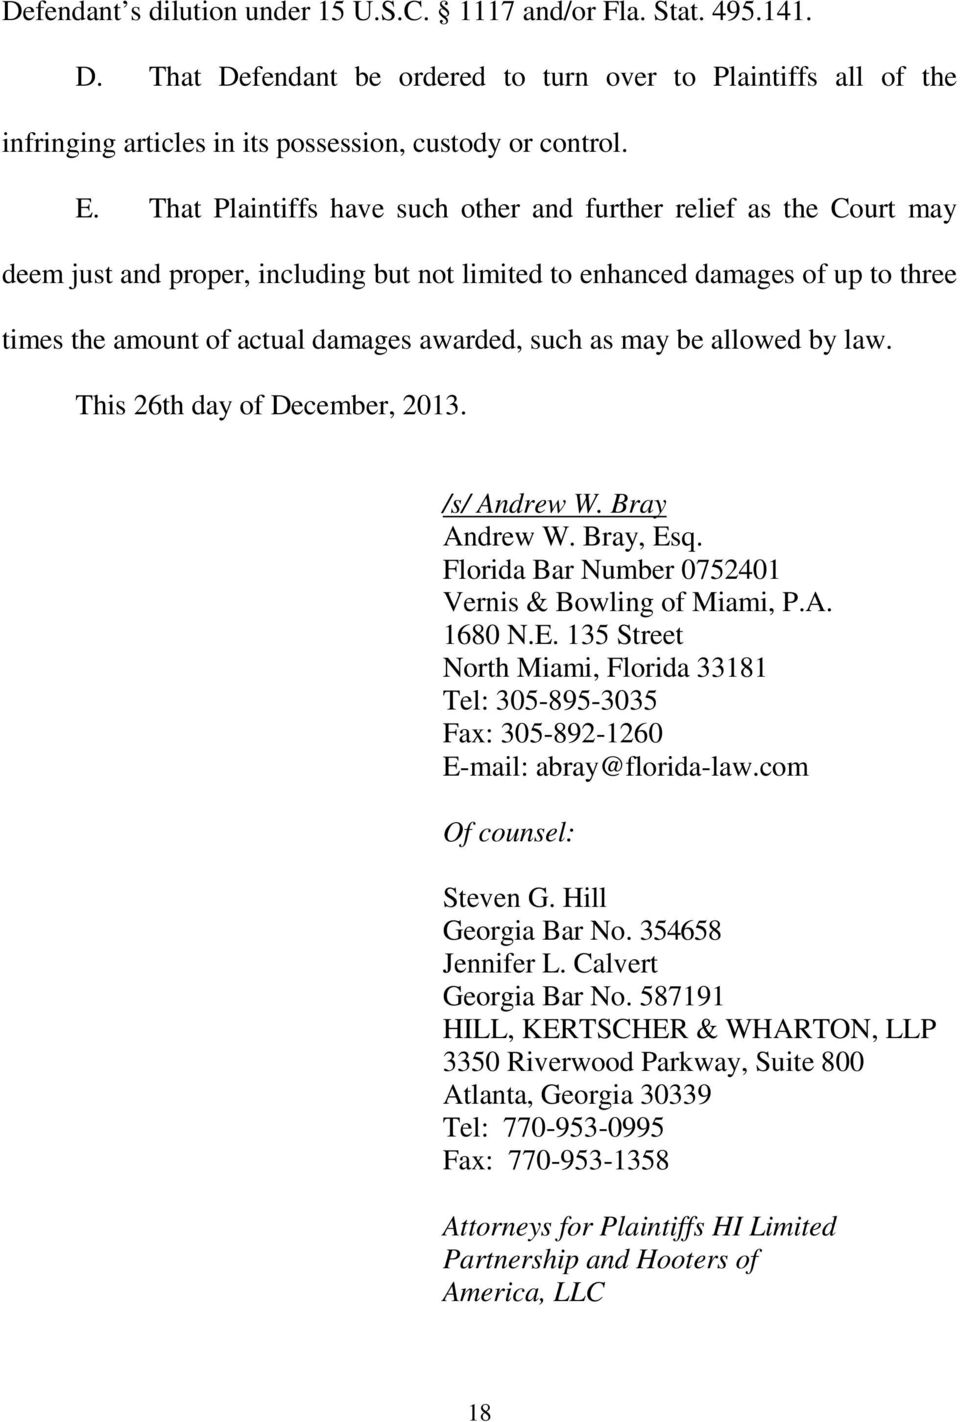 as may be allowed by law. This 26th day of December, 2013. /s/ Andrew W. Bray Andrew W. Bray, Esq. Florida Bar Number 0752401 Vernis & Bowling of Miami, P.A. 1680 N.E. 135 Street North Miami, Florida 33181 Tel: 305-895-3035 Fax: 305-892-1260 E-mail: abray@florida-law.